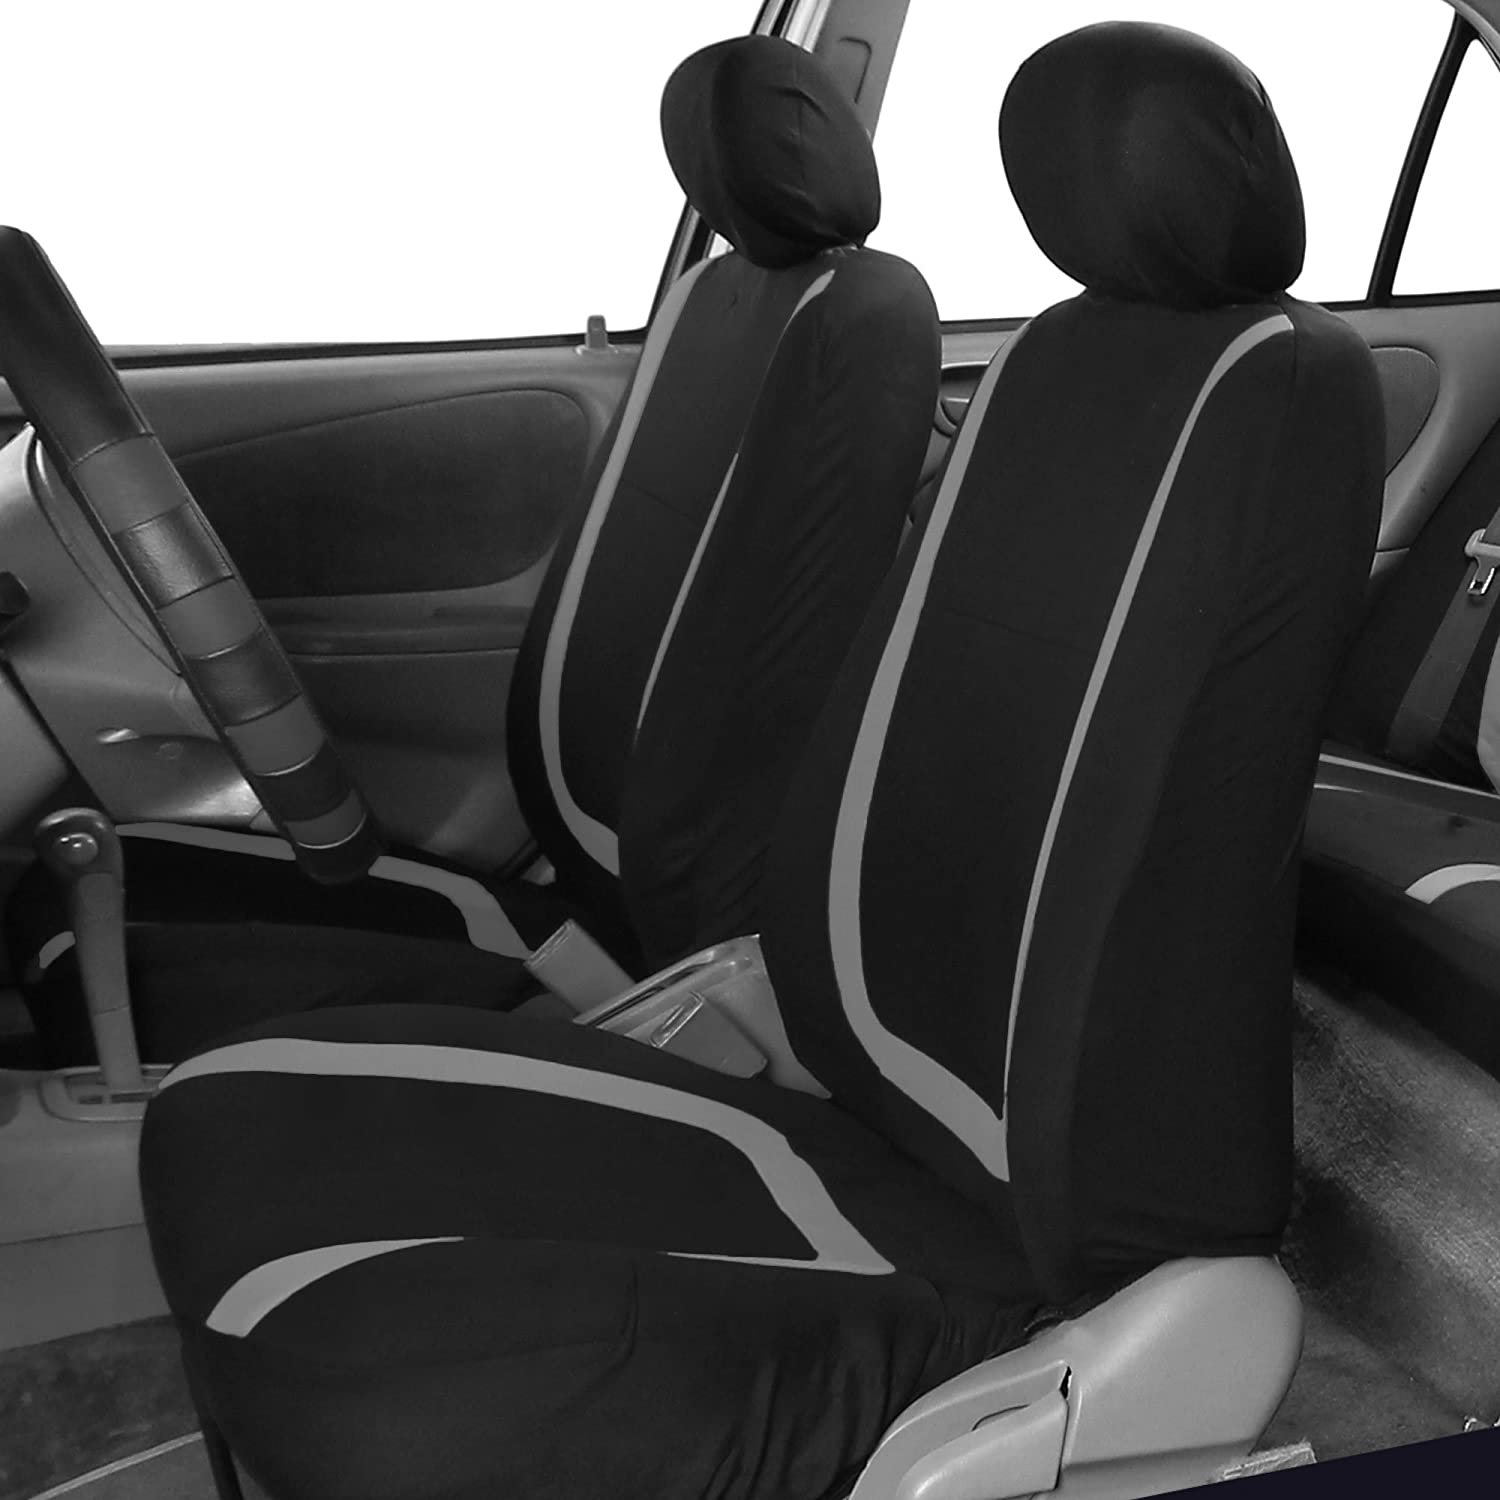 Blue//Black Color- Fit Most Car FH Group FH-FB032115 Unique Flat Cloth Seat Covers Suv Truck or Van